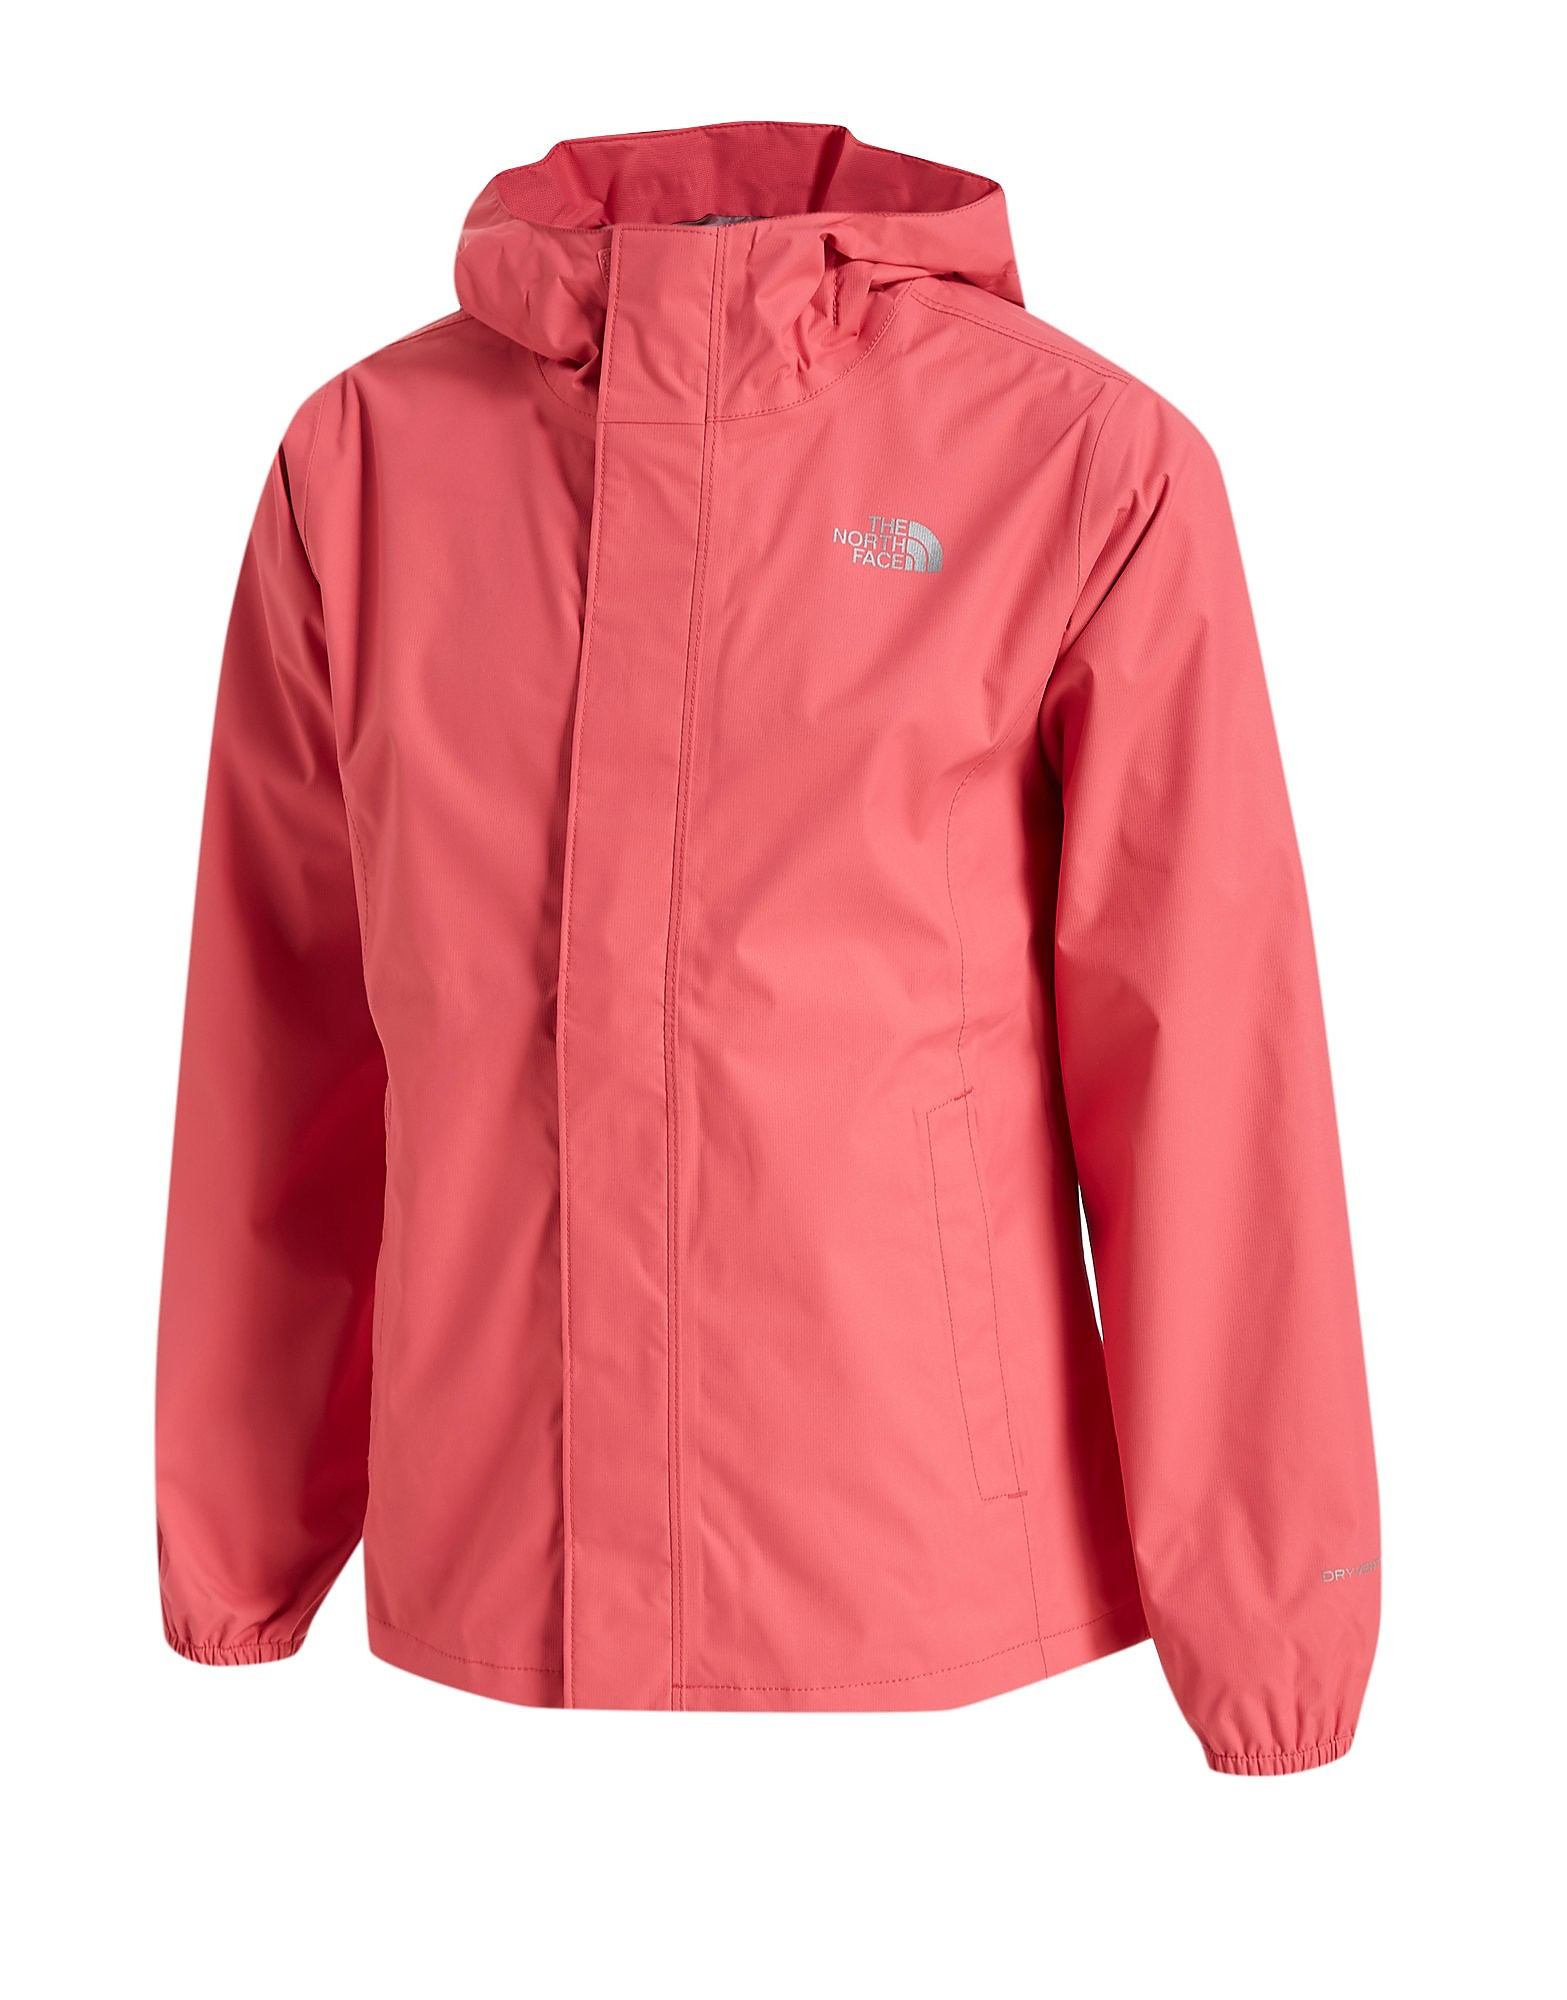 The North Face Giacca Resolve per ragazze